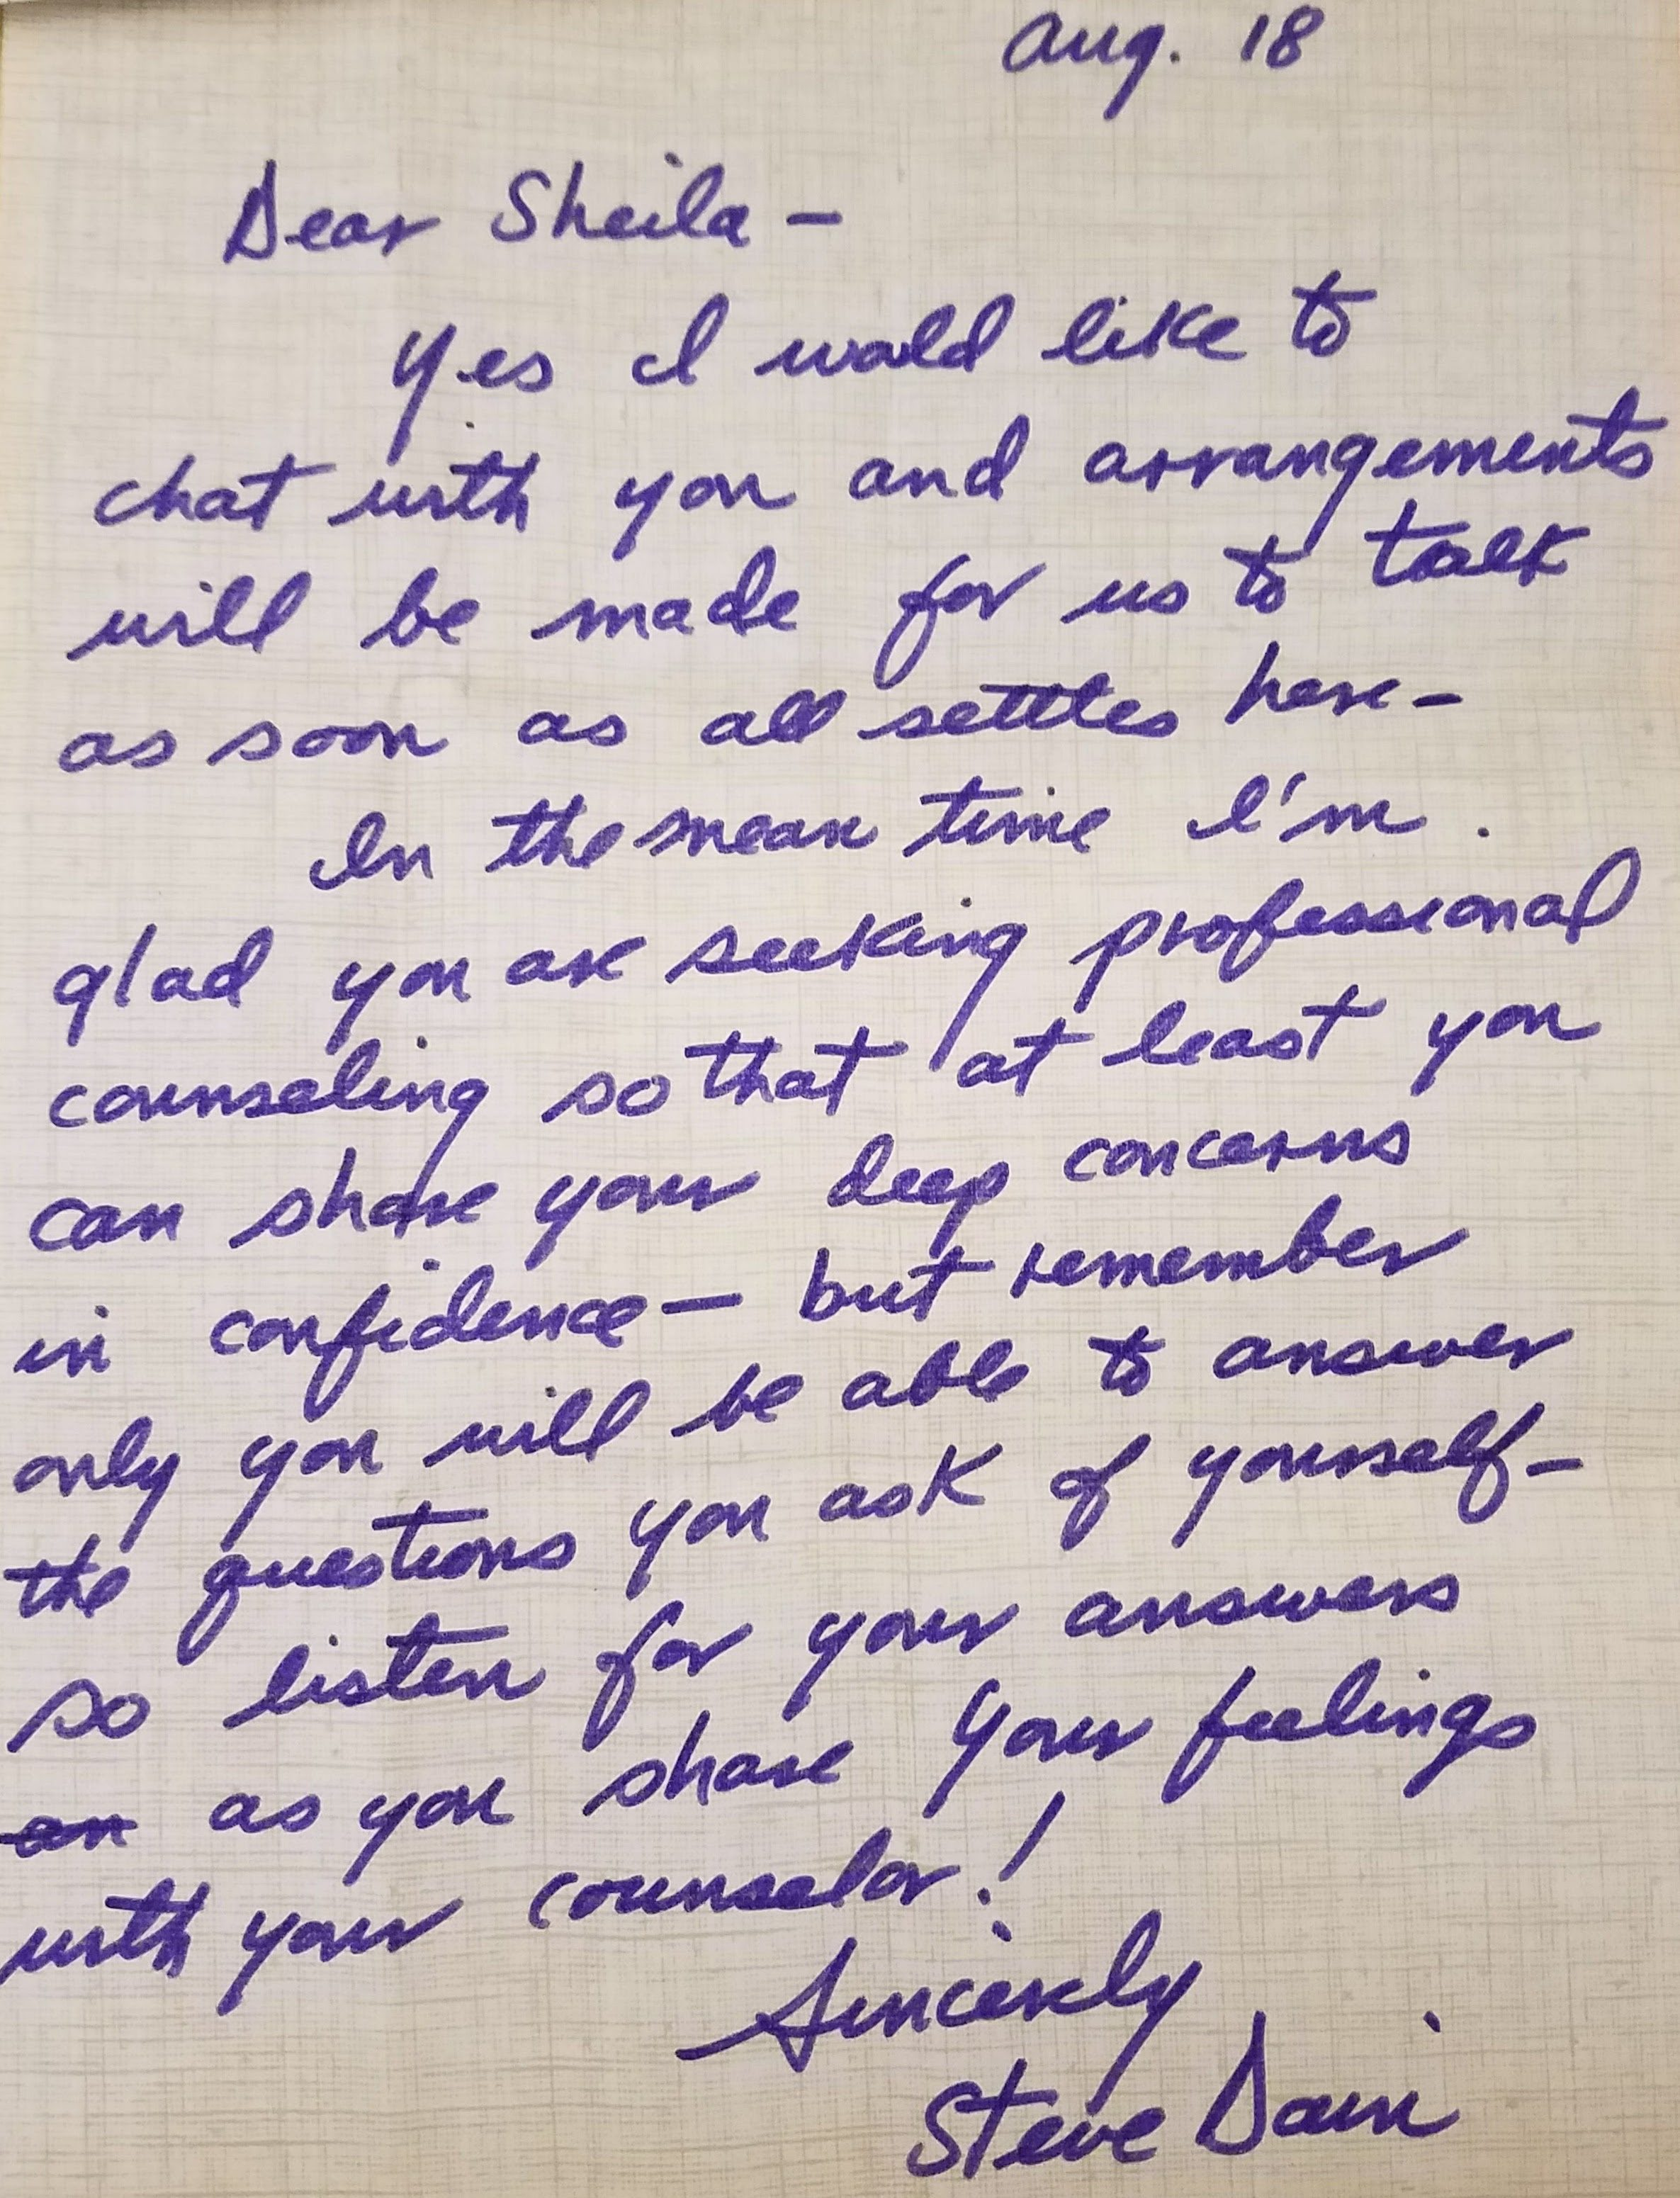 A Letter From Steve to Lou